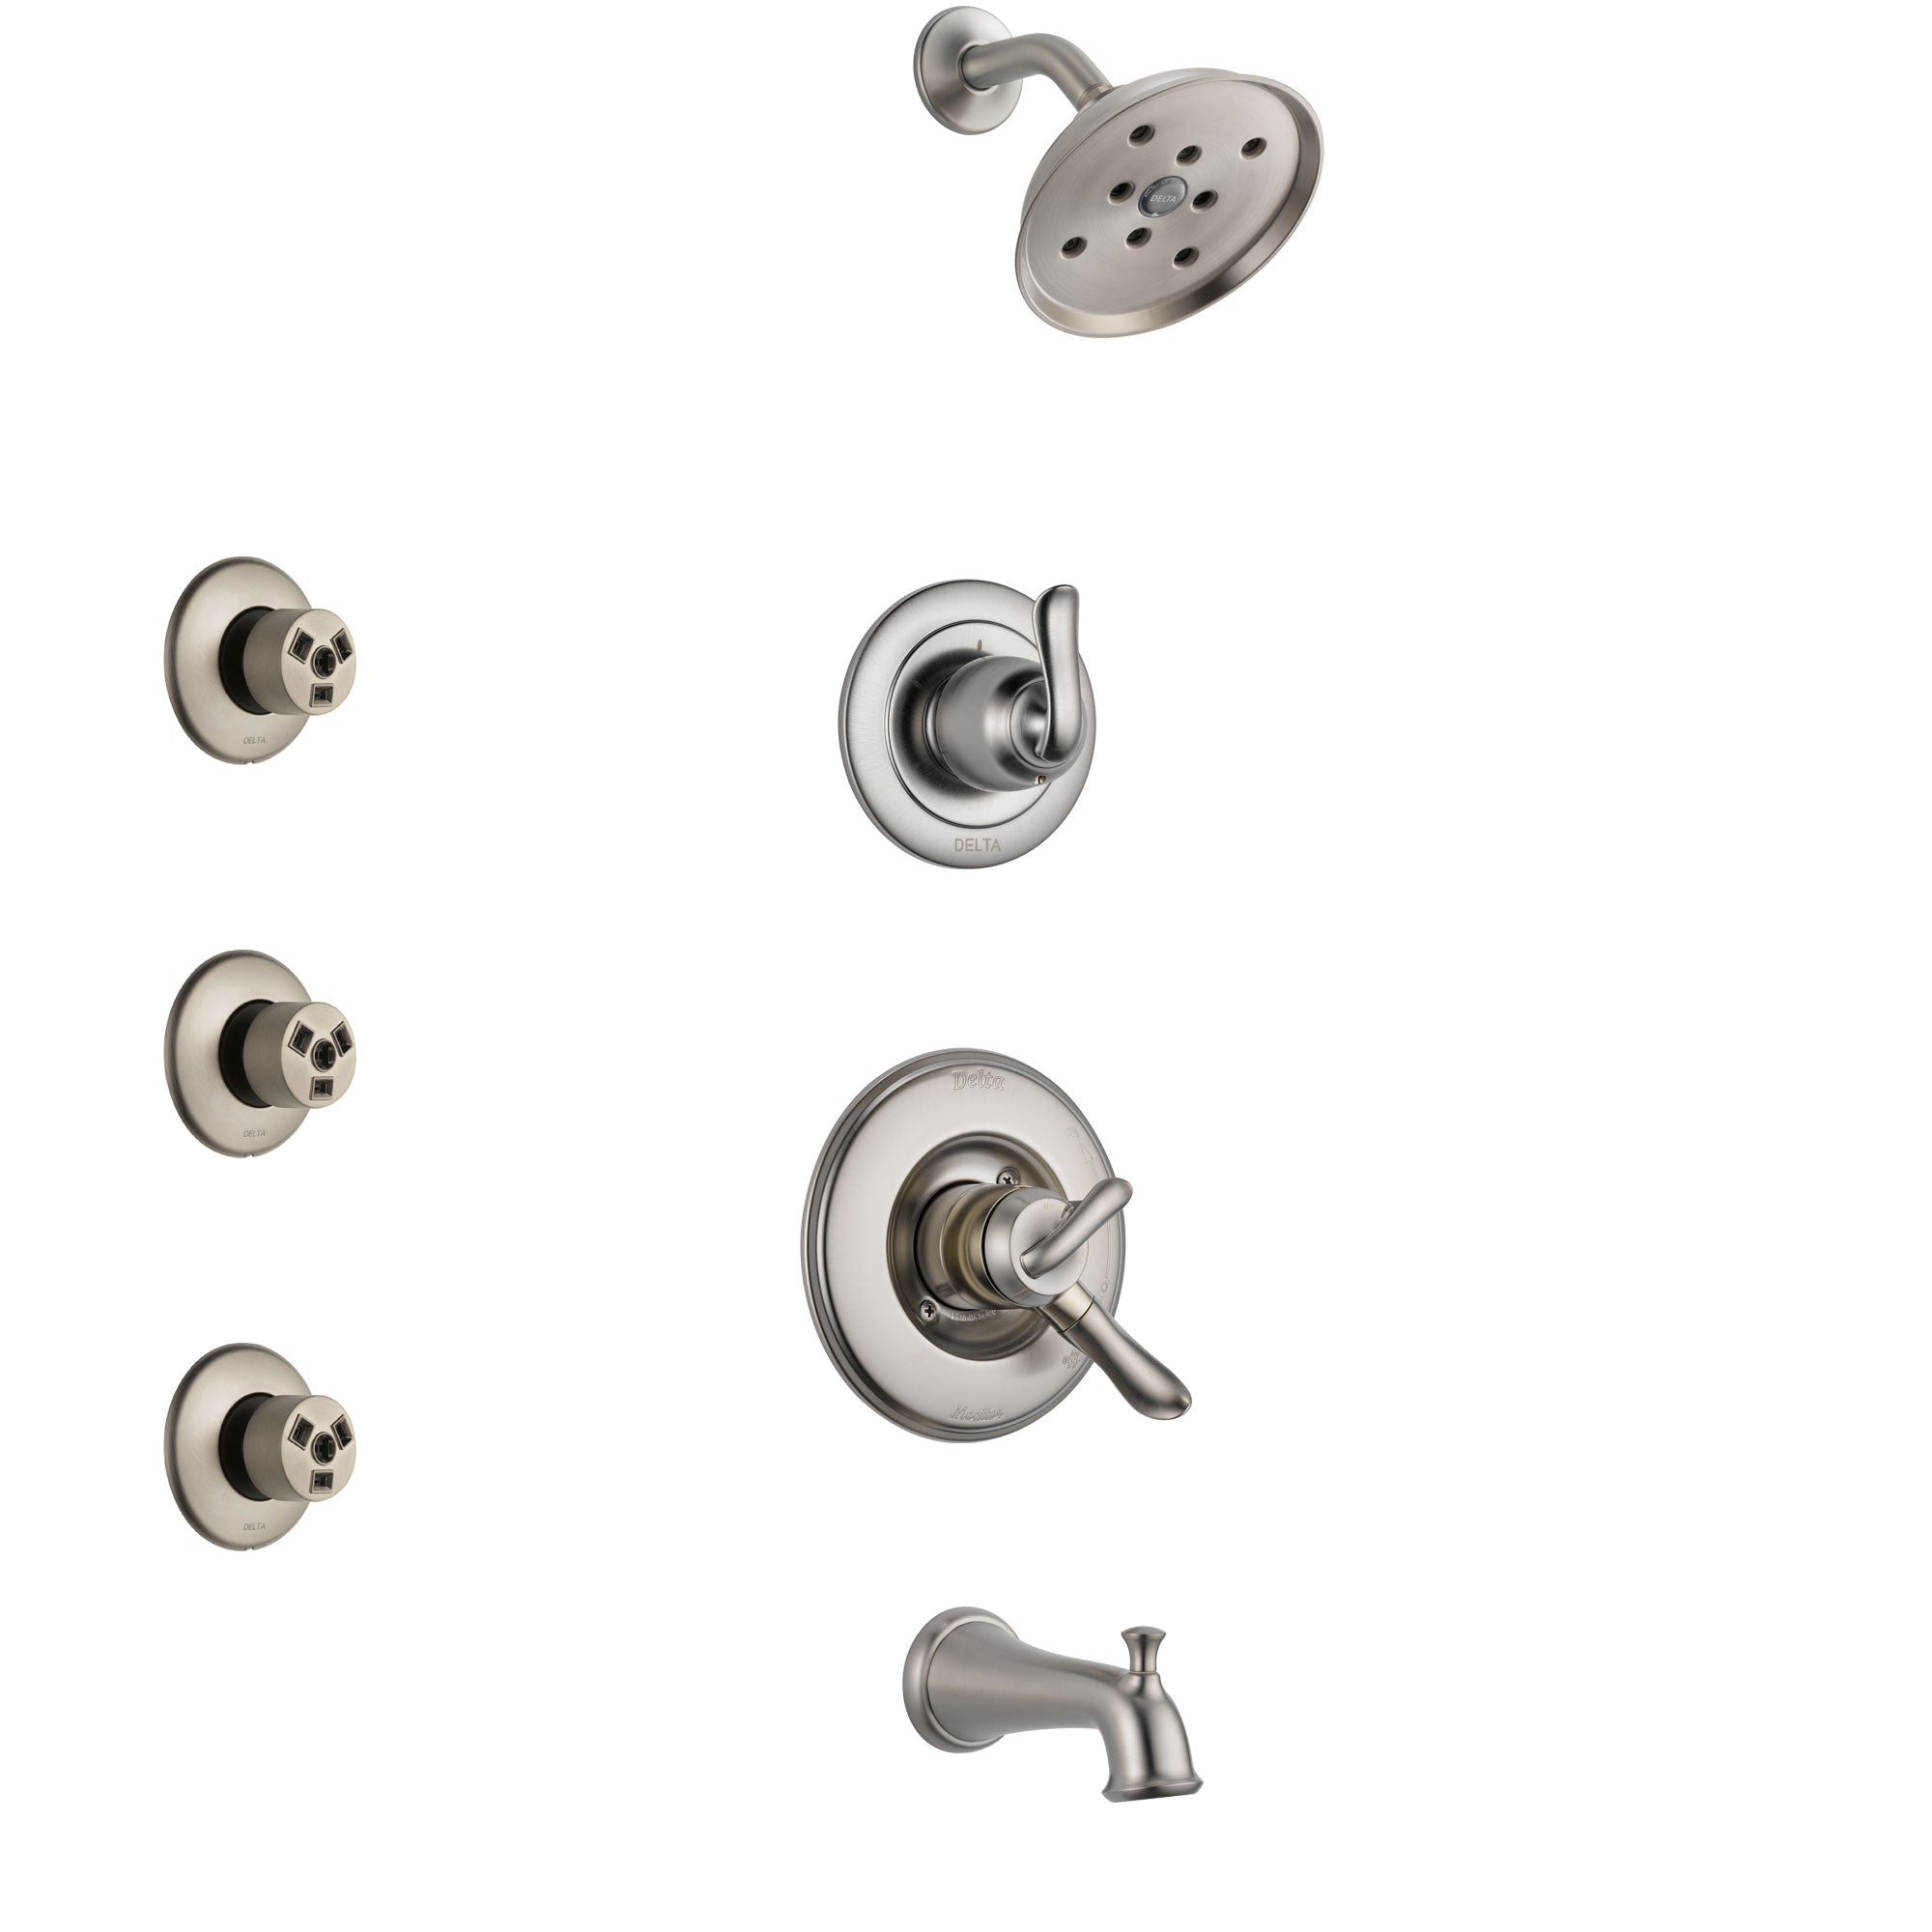 Delta Linden Stainless Steel Finish Tub and Shower System with Dual Control Handle, 3-Setting Diverter, Showerhead, and 3 Body Sprays SS17494SS1